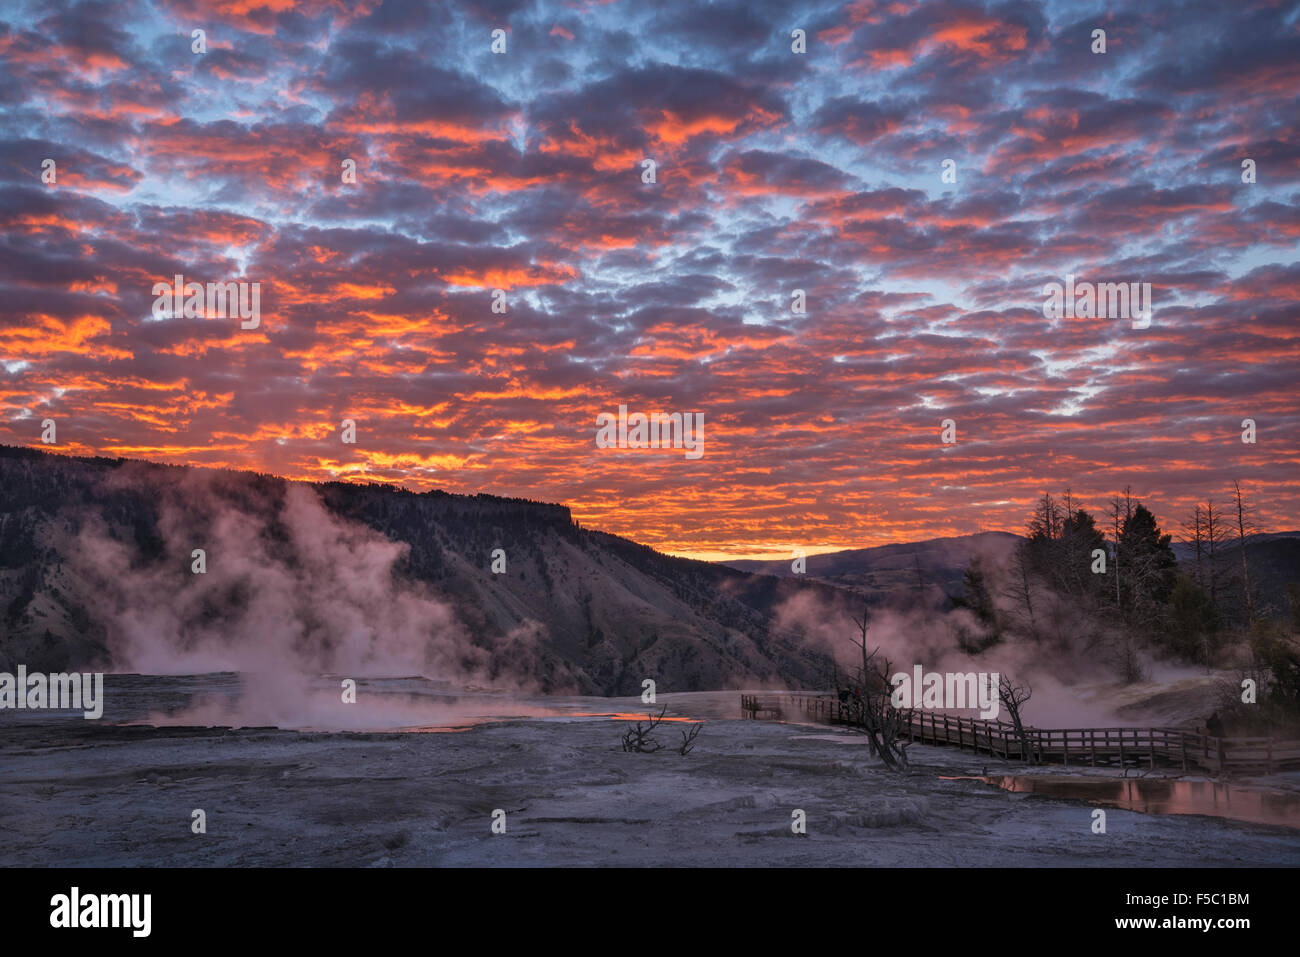 Sunrise clouds over Upper Mammoth Terrace, Yellowstone National Park, Wyoming. - Stock Image